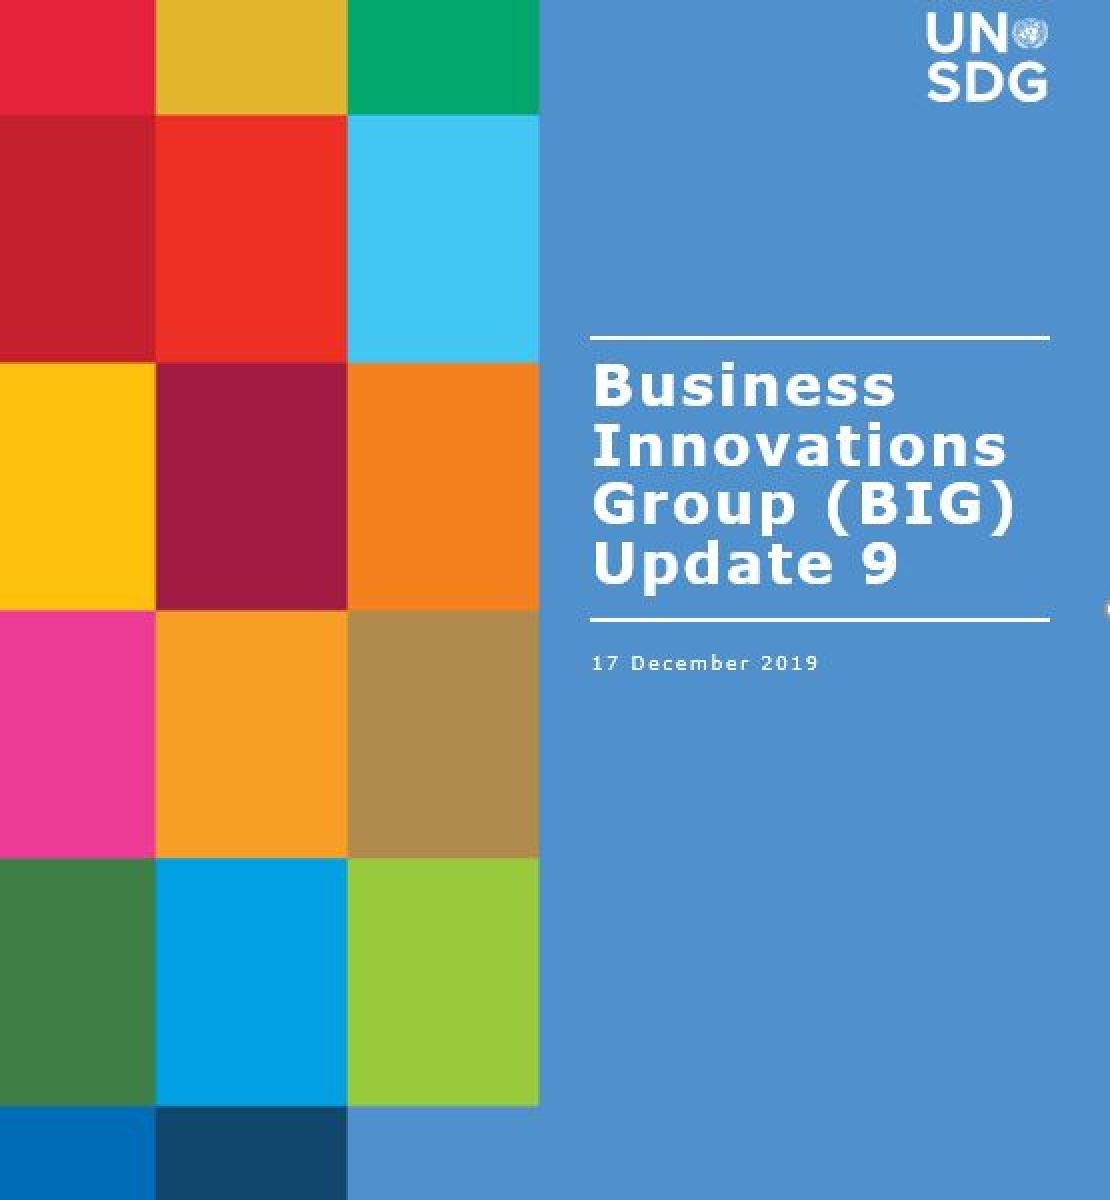 Shows the title, Business Innovations Group (BIG) Update 9 against a solid background next to a colour grid of rectangles to the left of it.